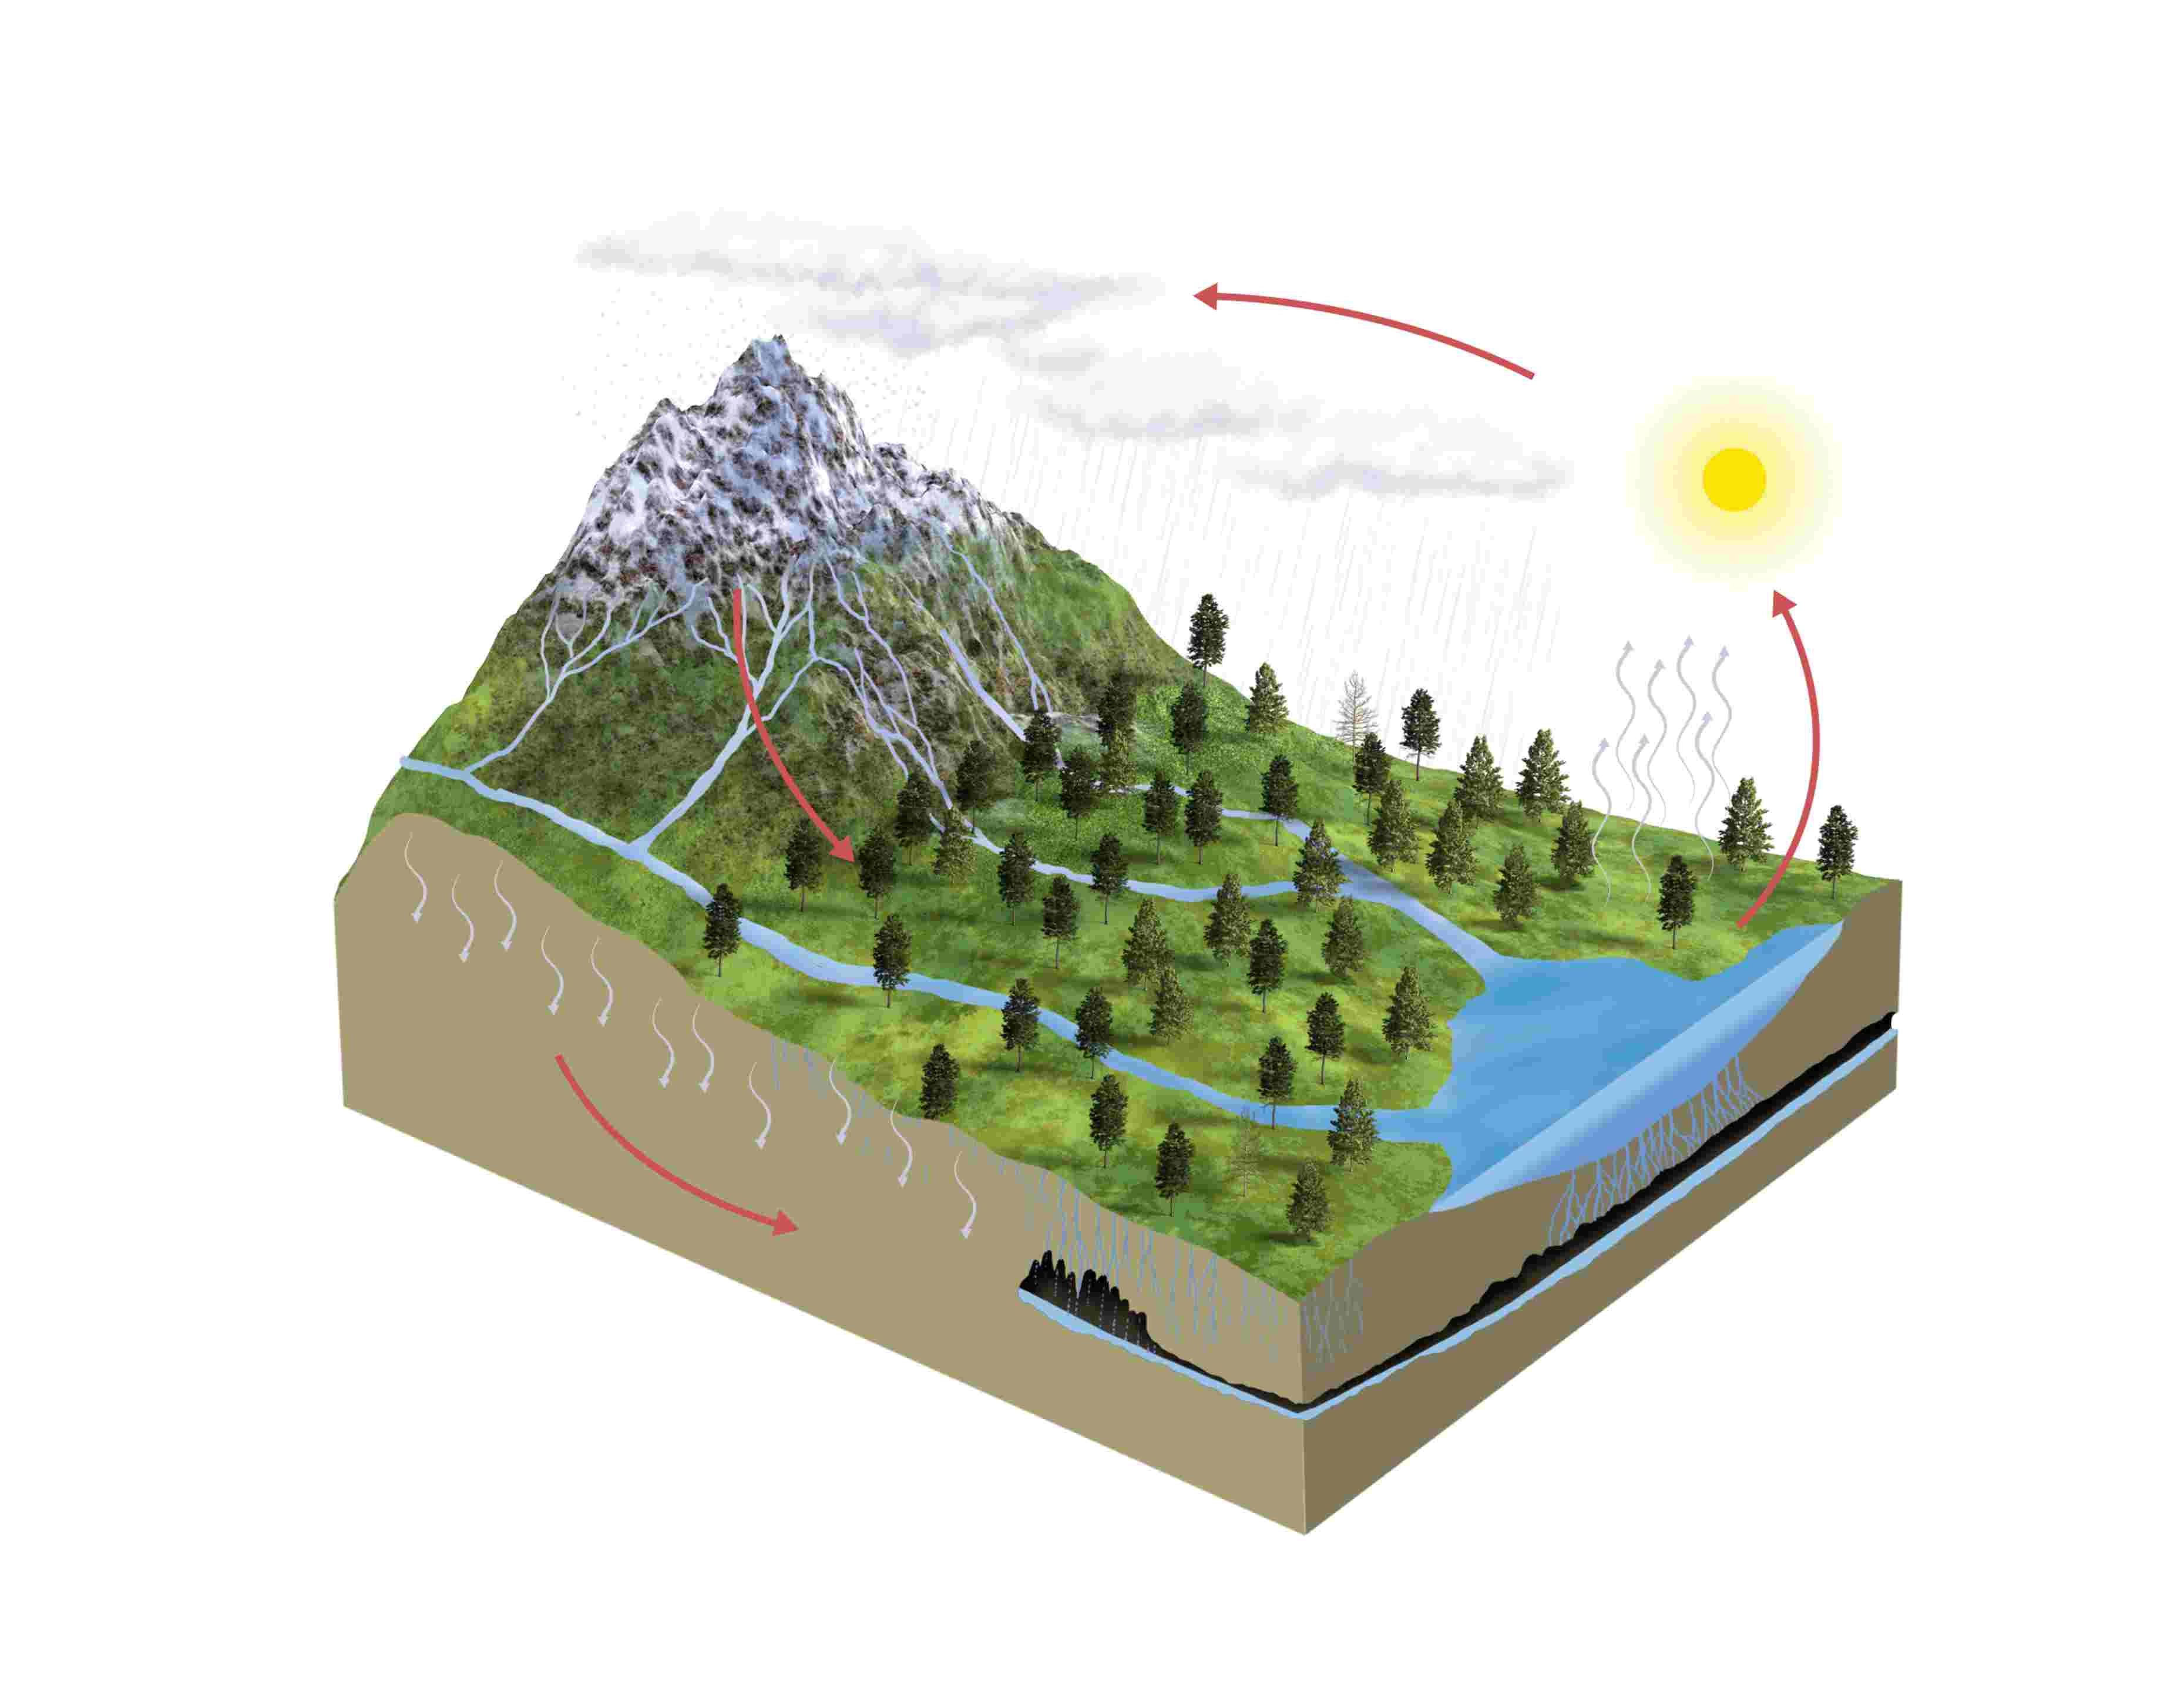 water cycle diagram with questions wiring hotpoint aquarius tumble dryer biogeochemical cycles